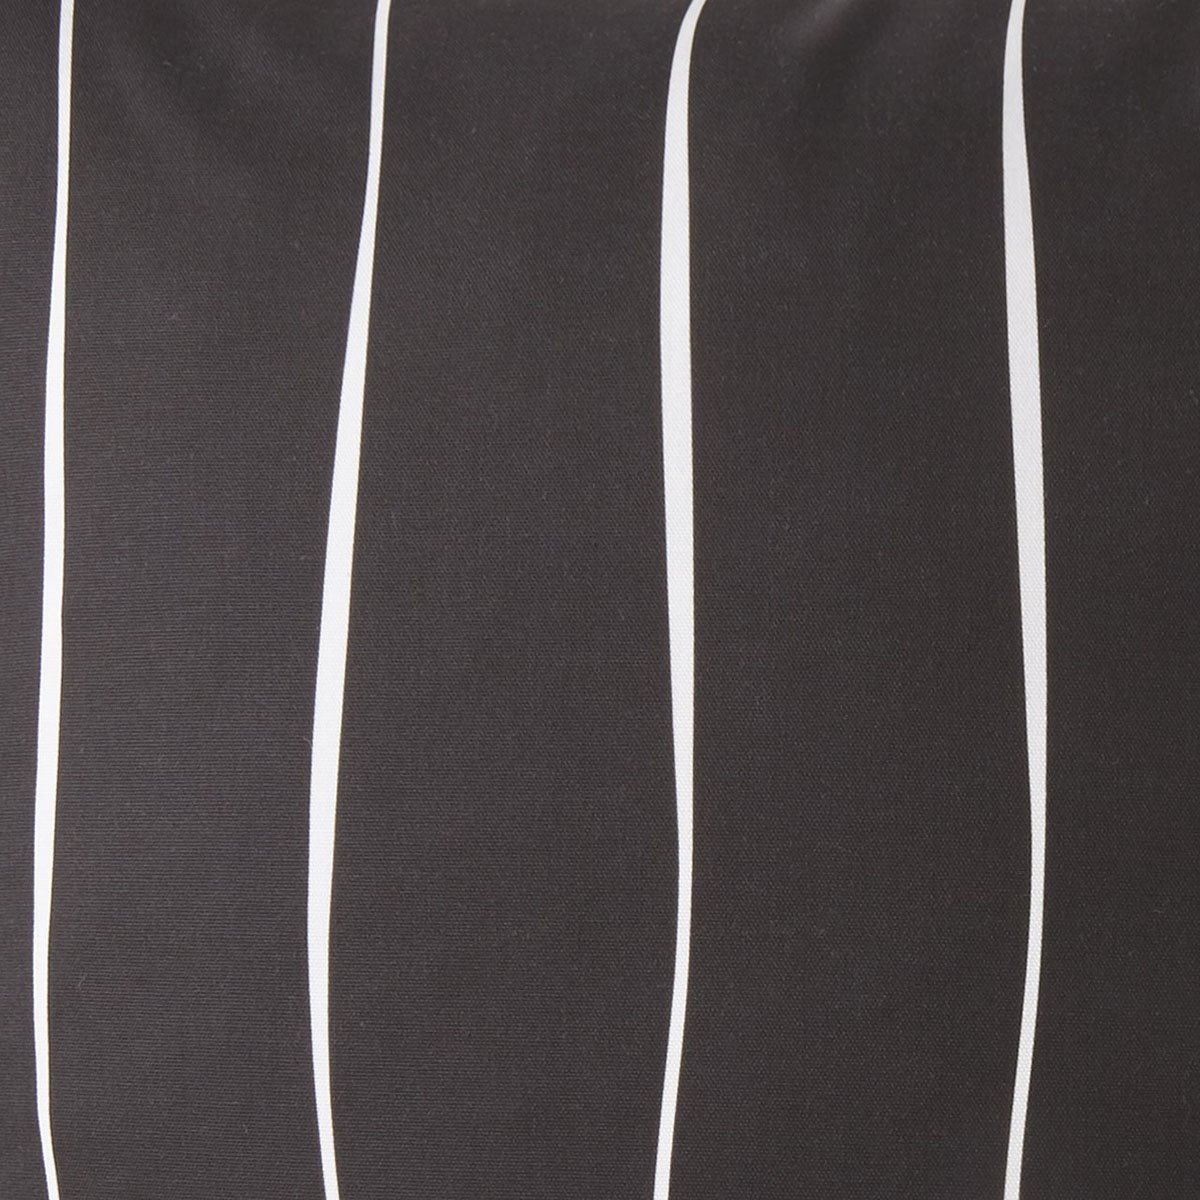 Toile Back In Black Bedskirt 15 Drop King By Colcha